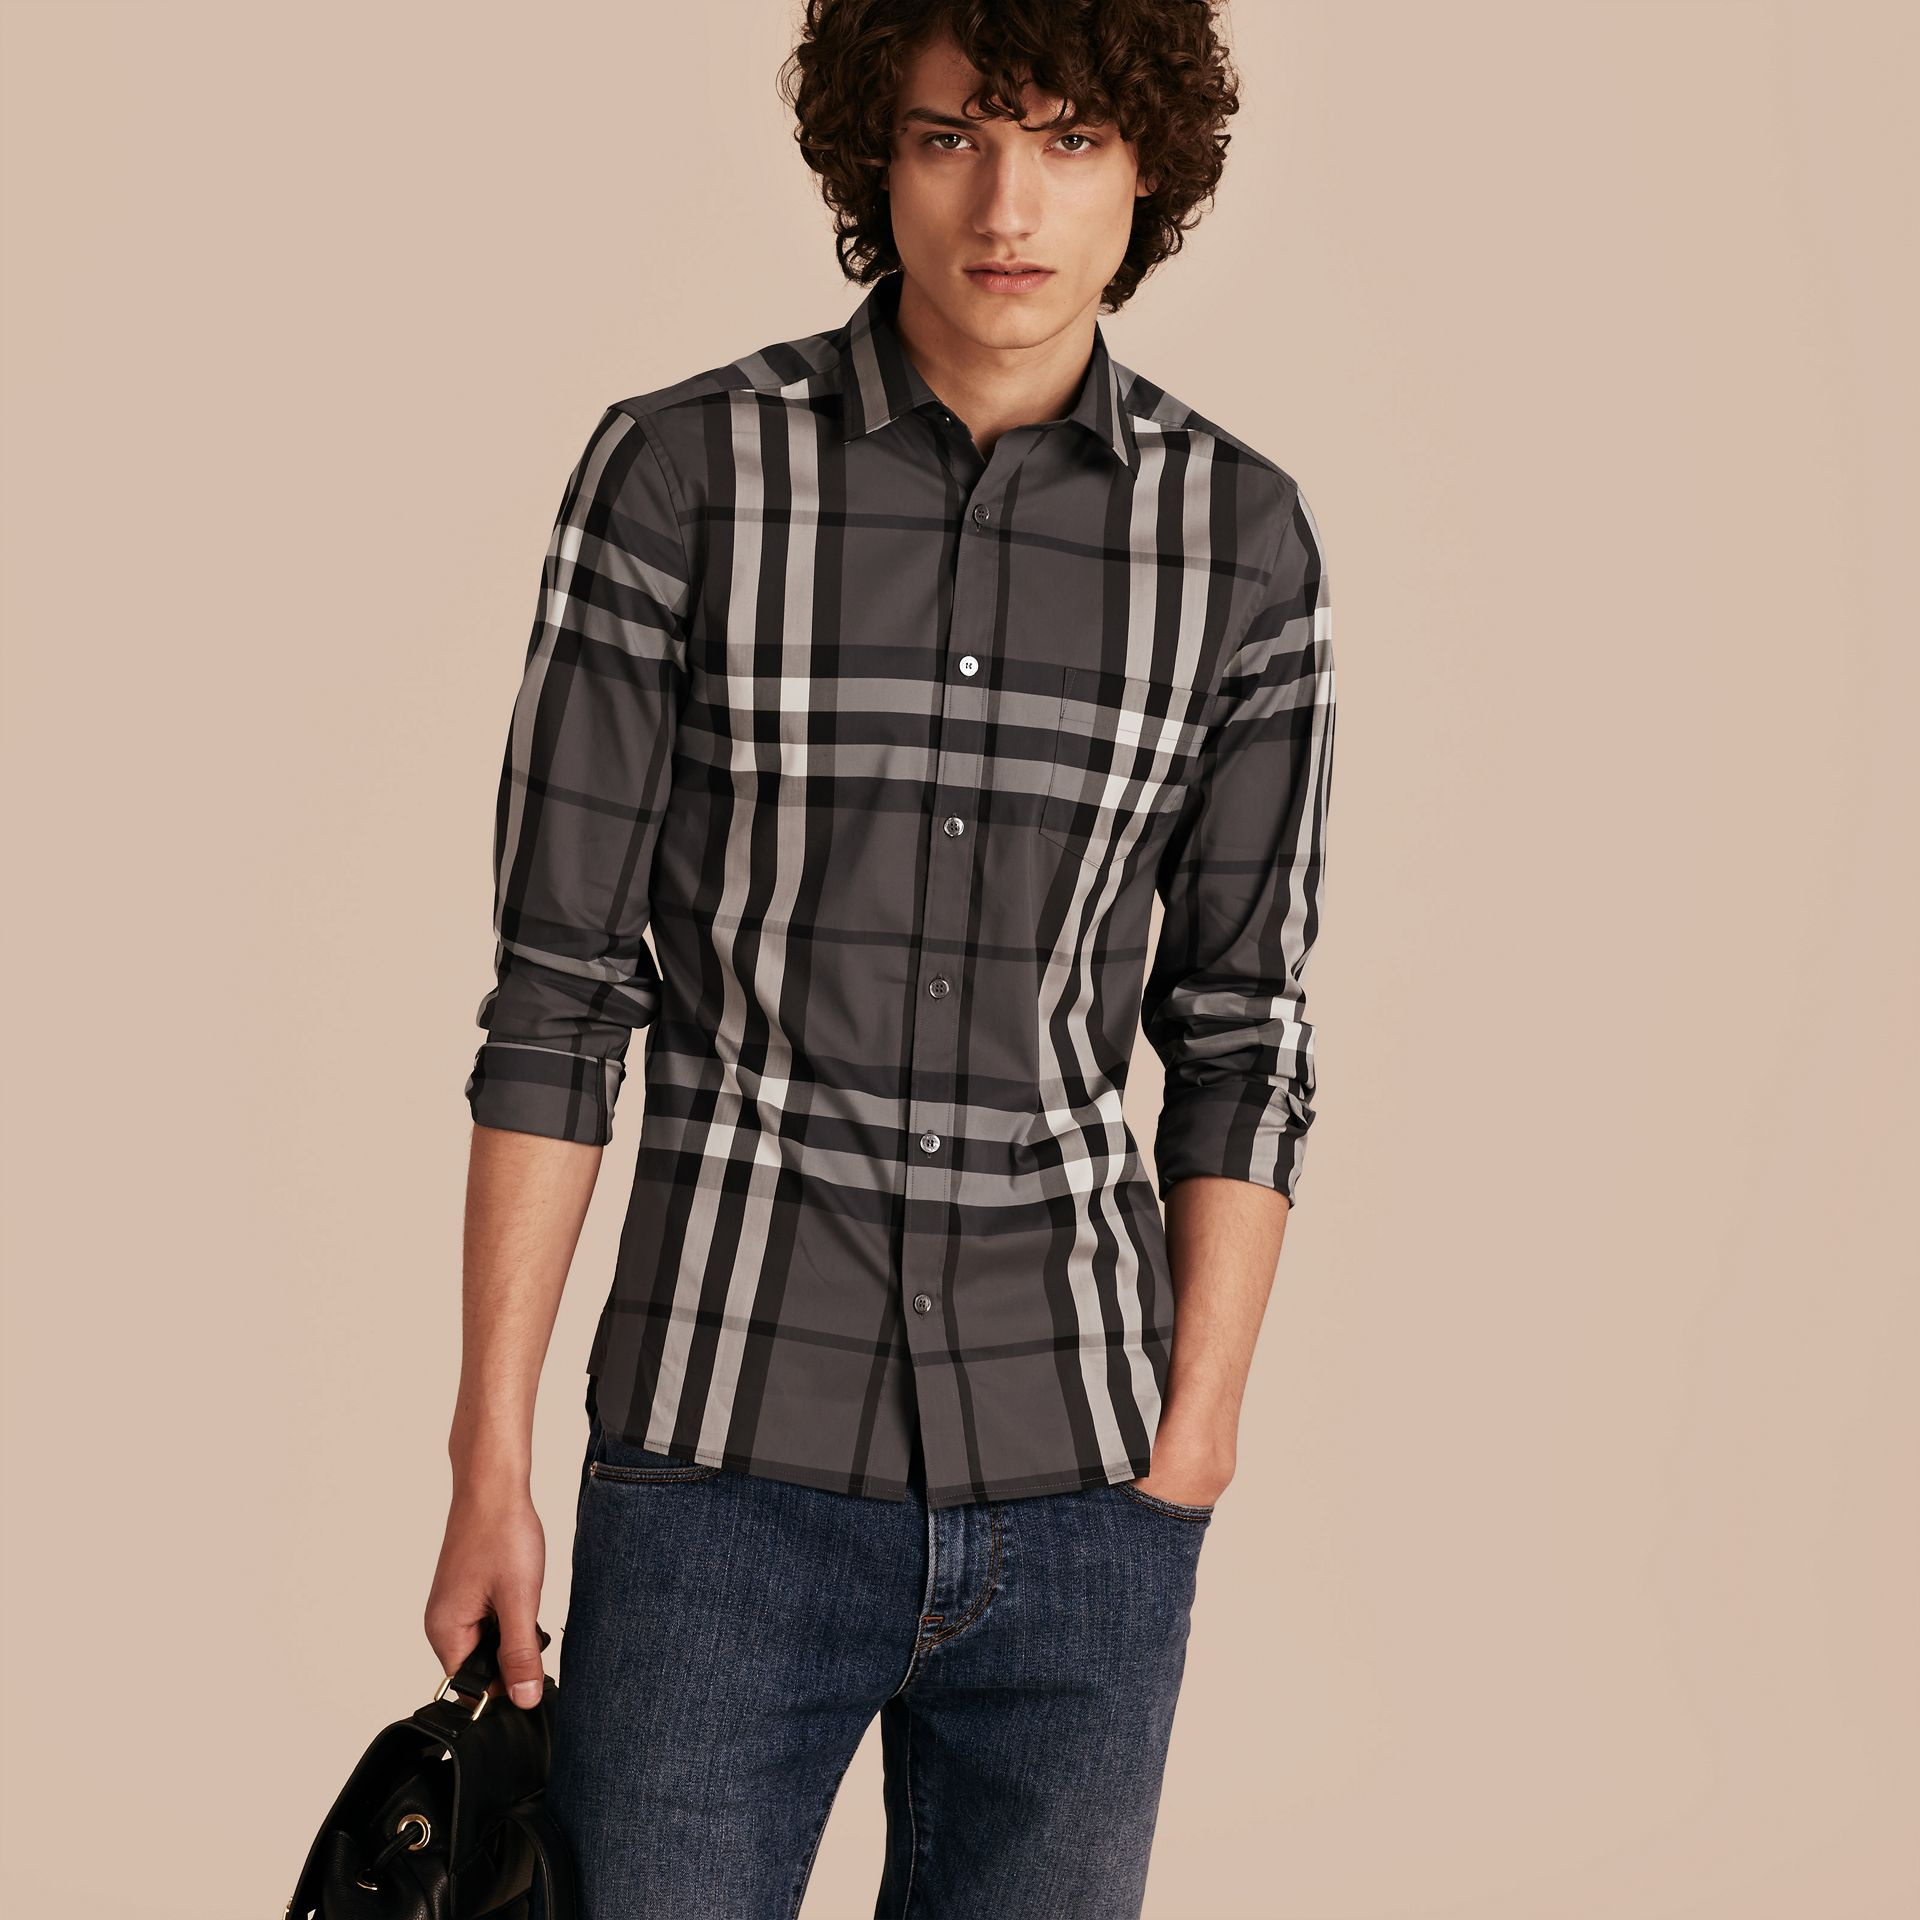 Charcoal Check Stretch Cotton Shirt Charcoal - gallery image 6